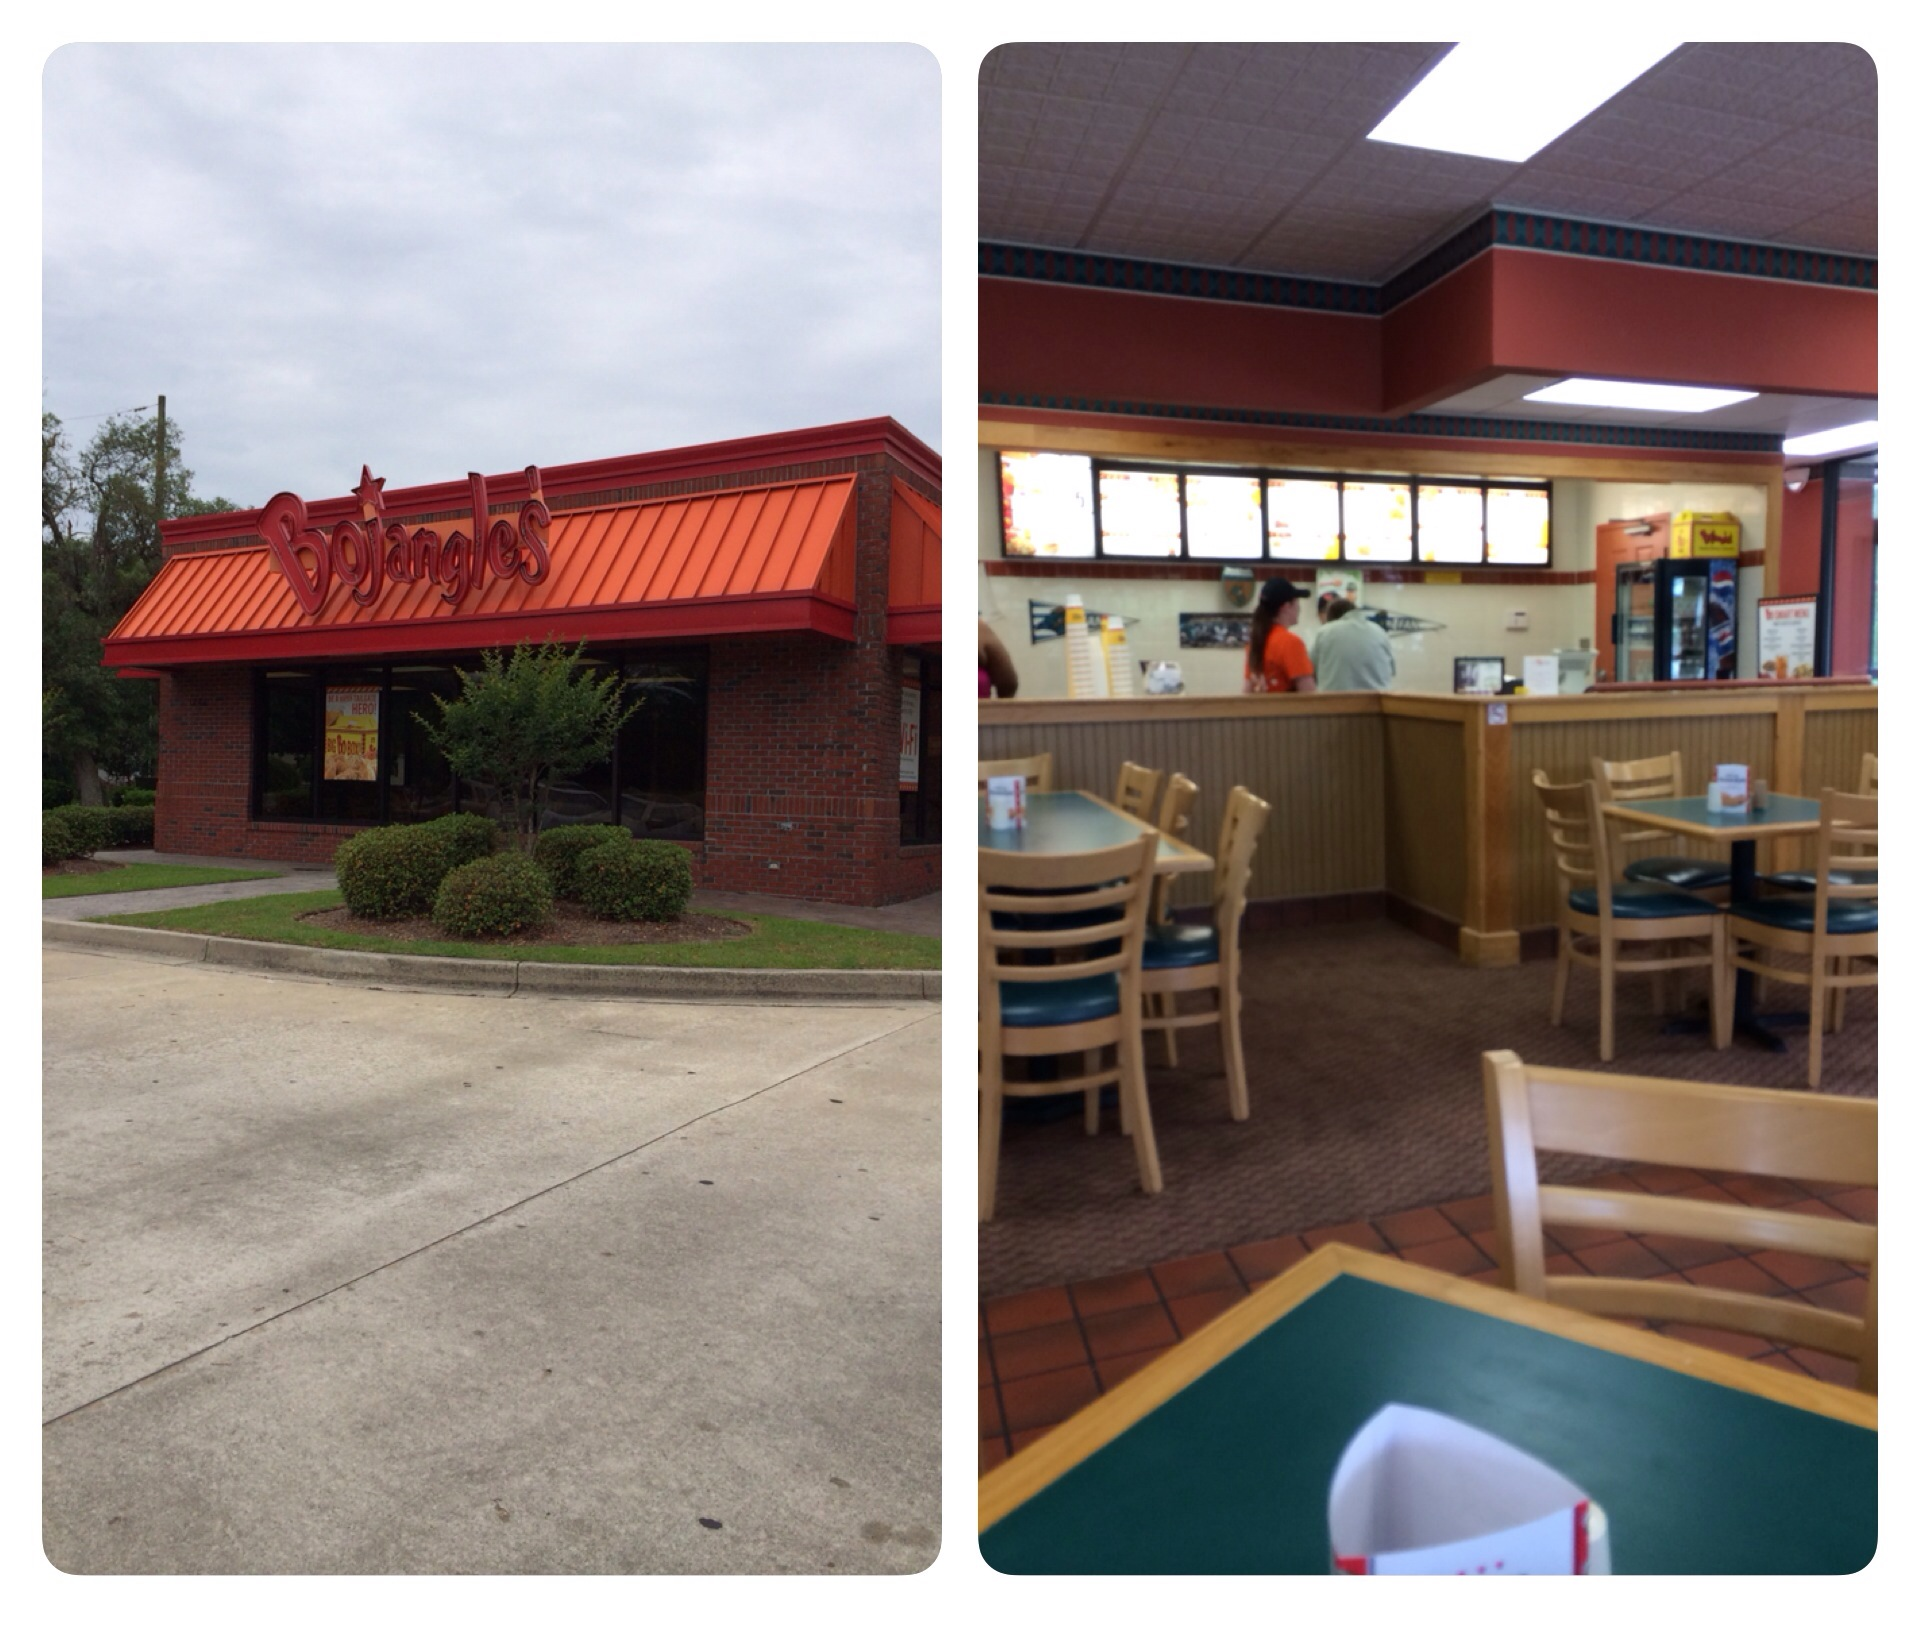 A look at the outside of the Bojangles I visited and the view from inside where I sat.